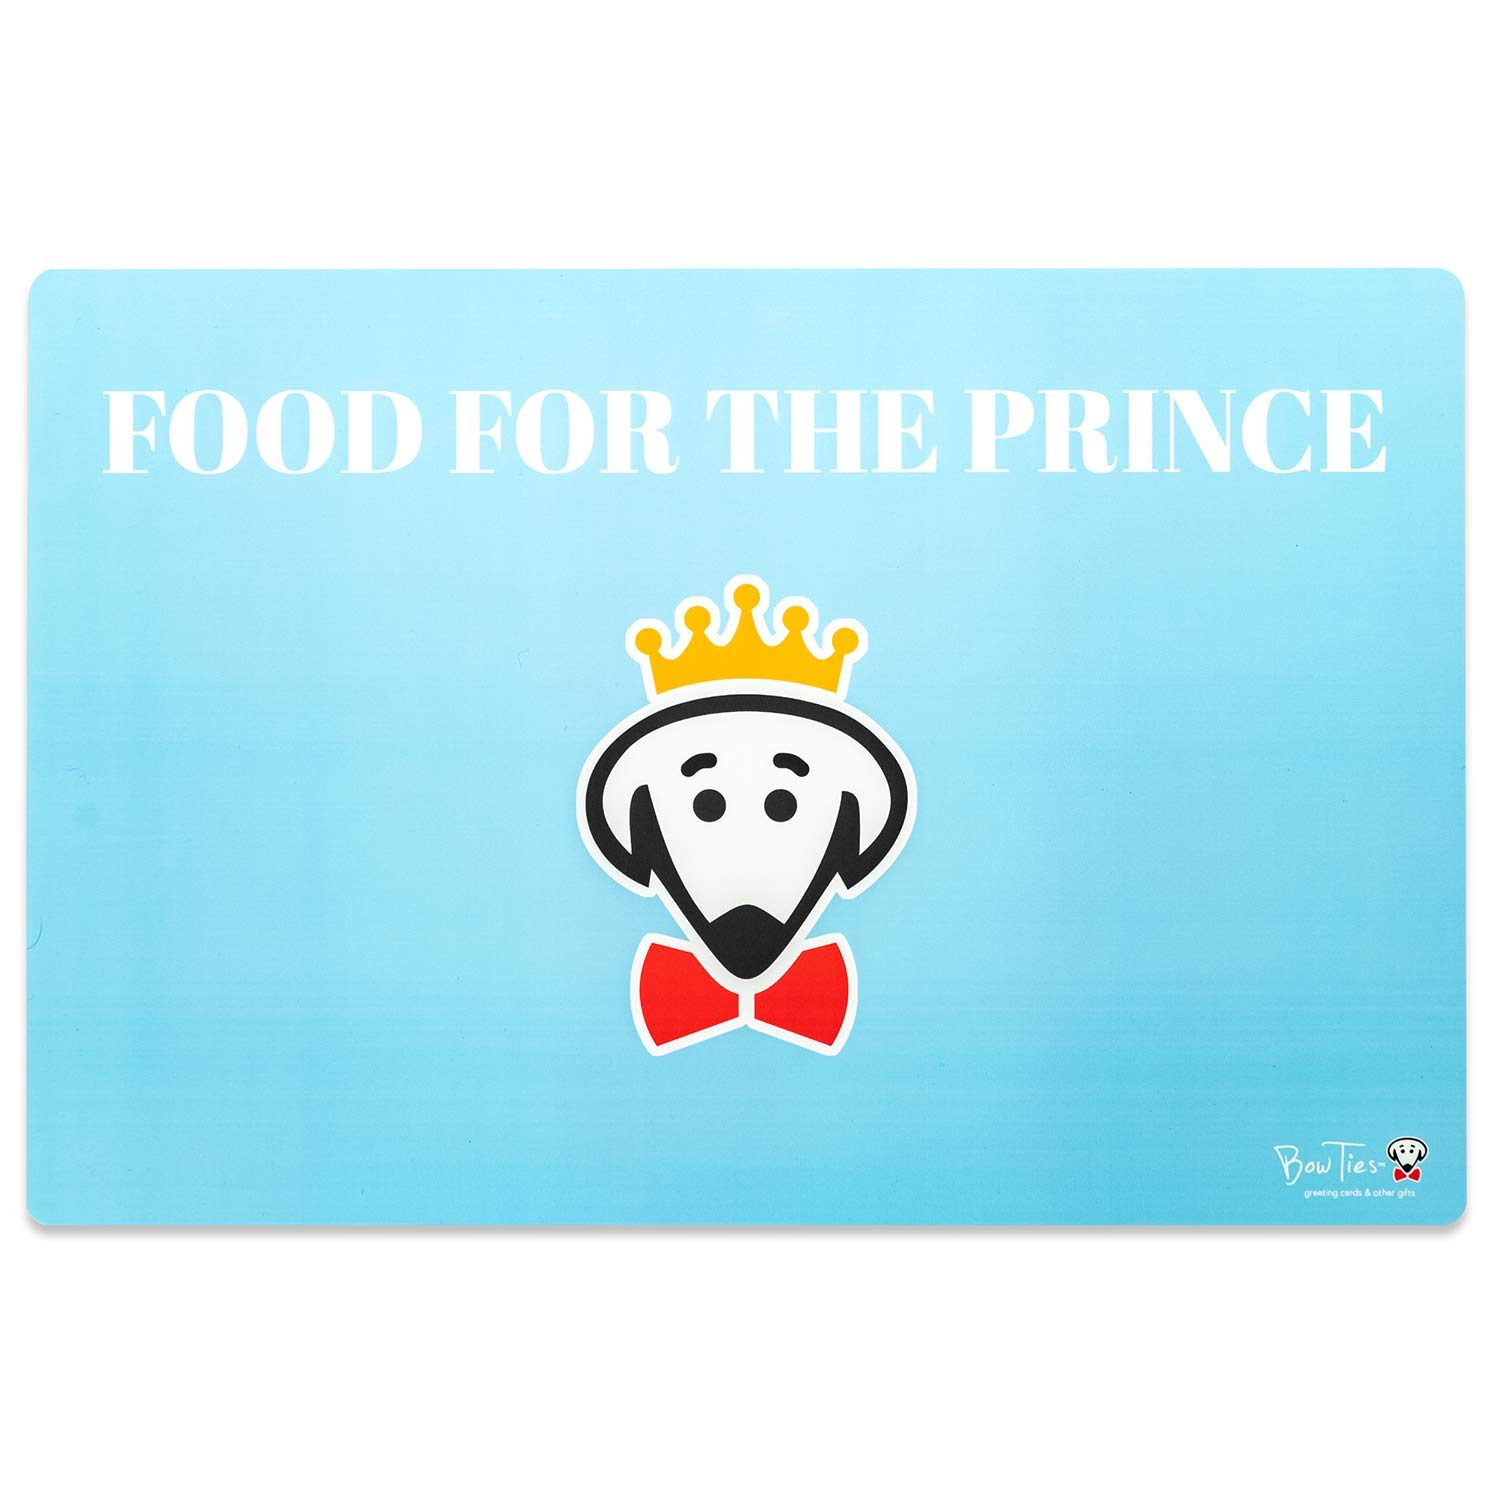 The Prince Dines Here pet mat (Food for the Prince on back) by Beau Tyler